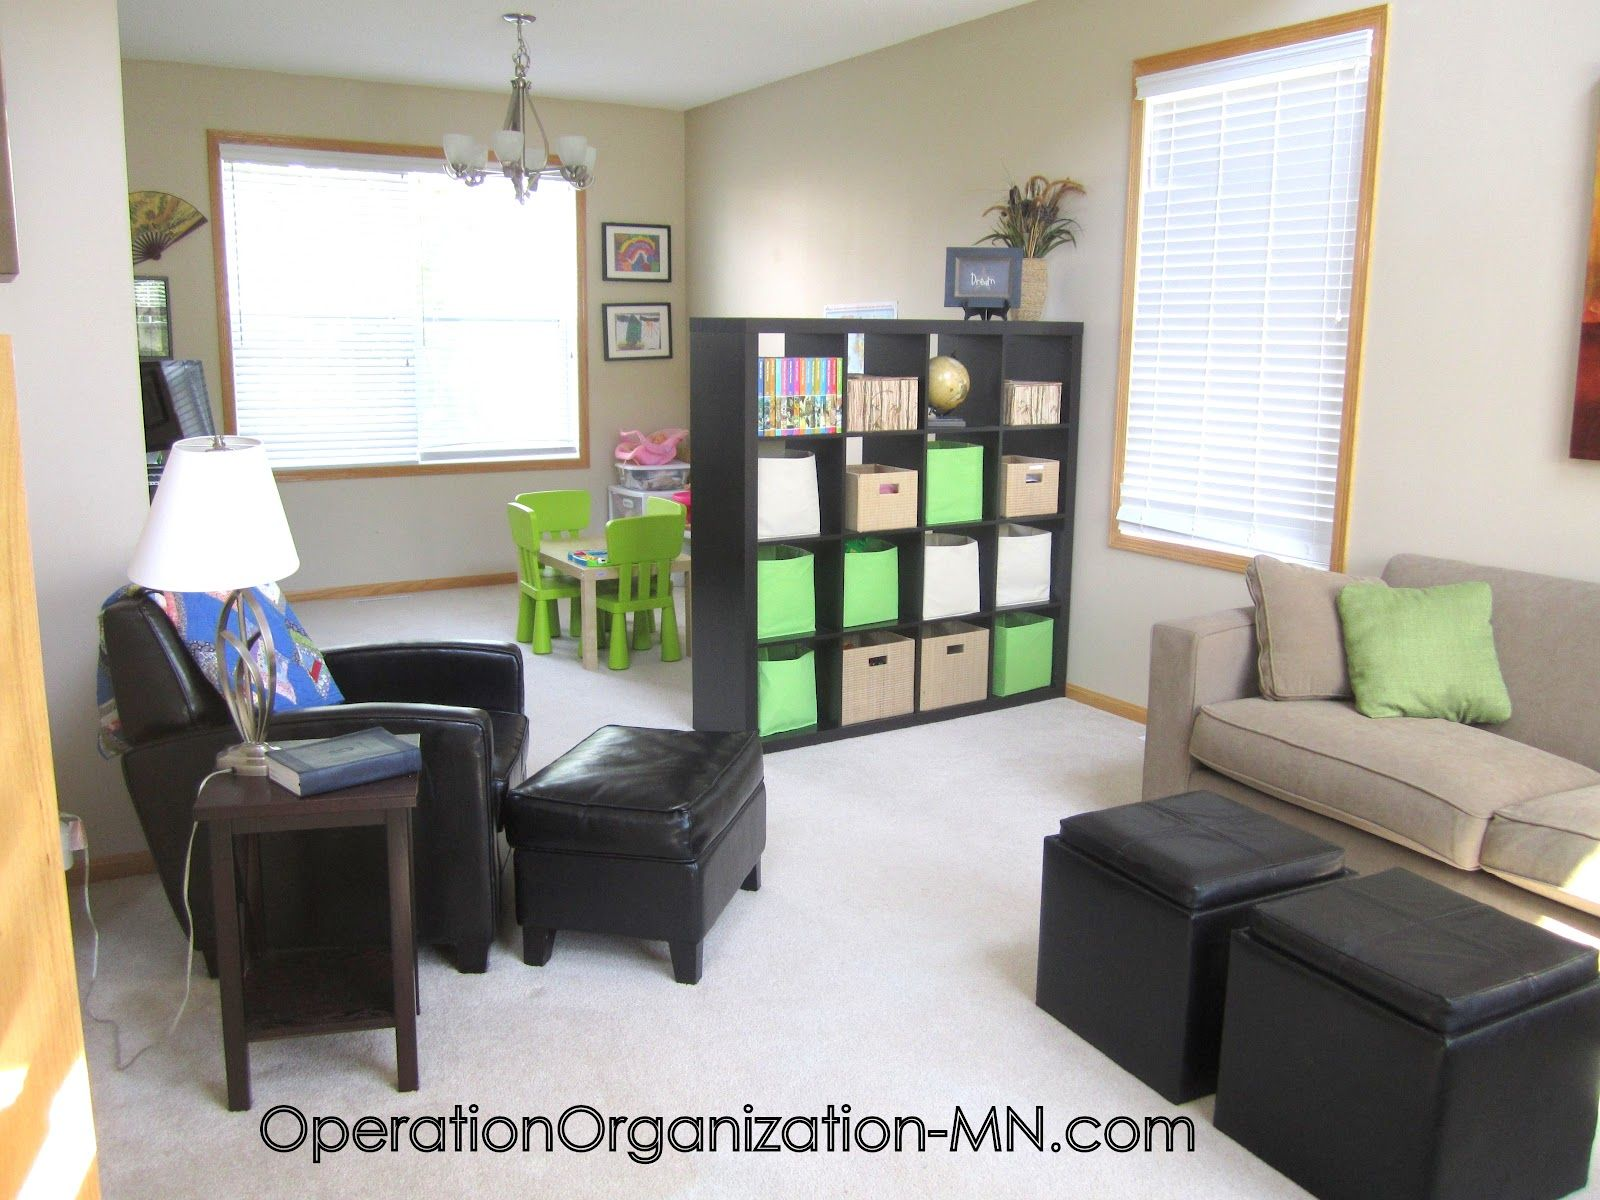 Exceptionnel Operation Organization: Organizing Small Spaces :: Dual Purpose Rooms